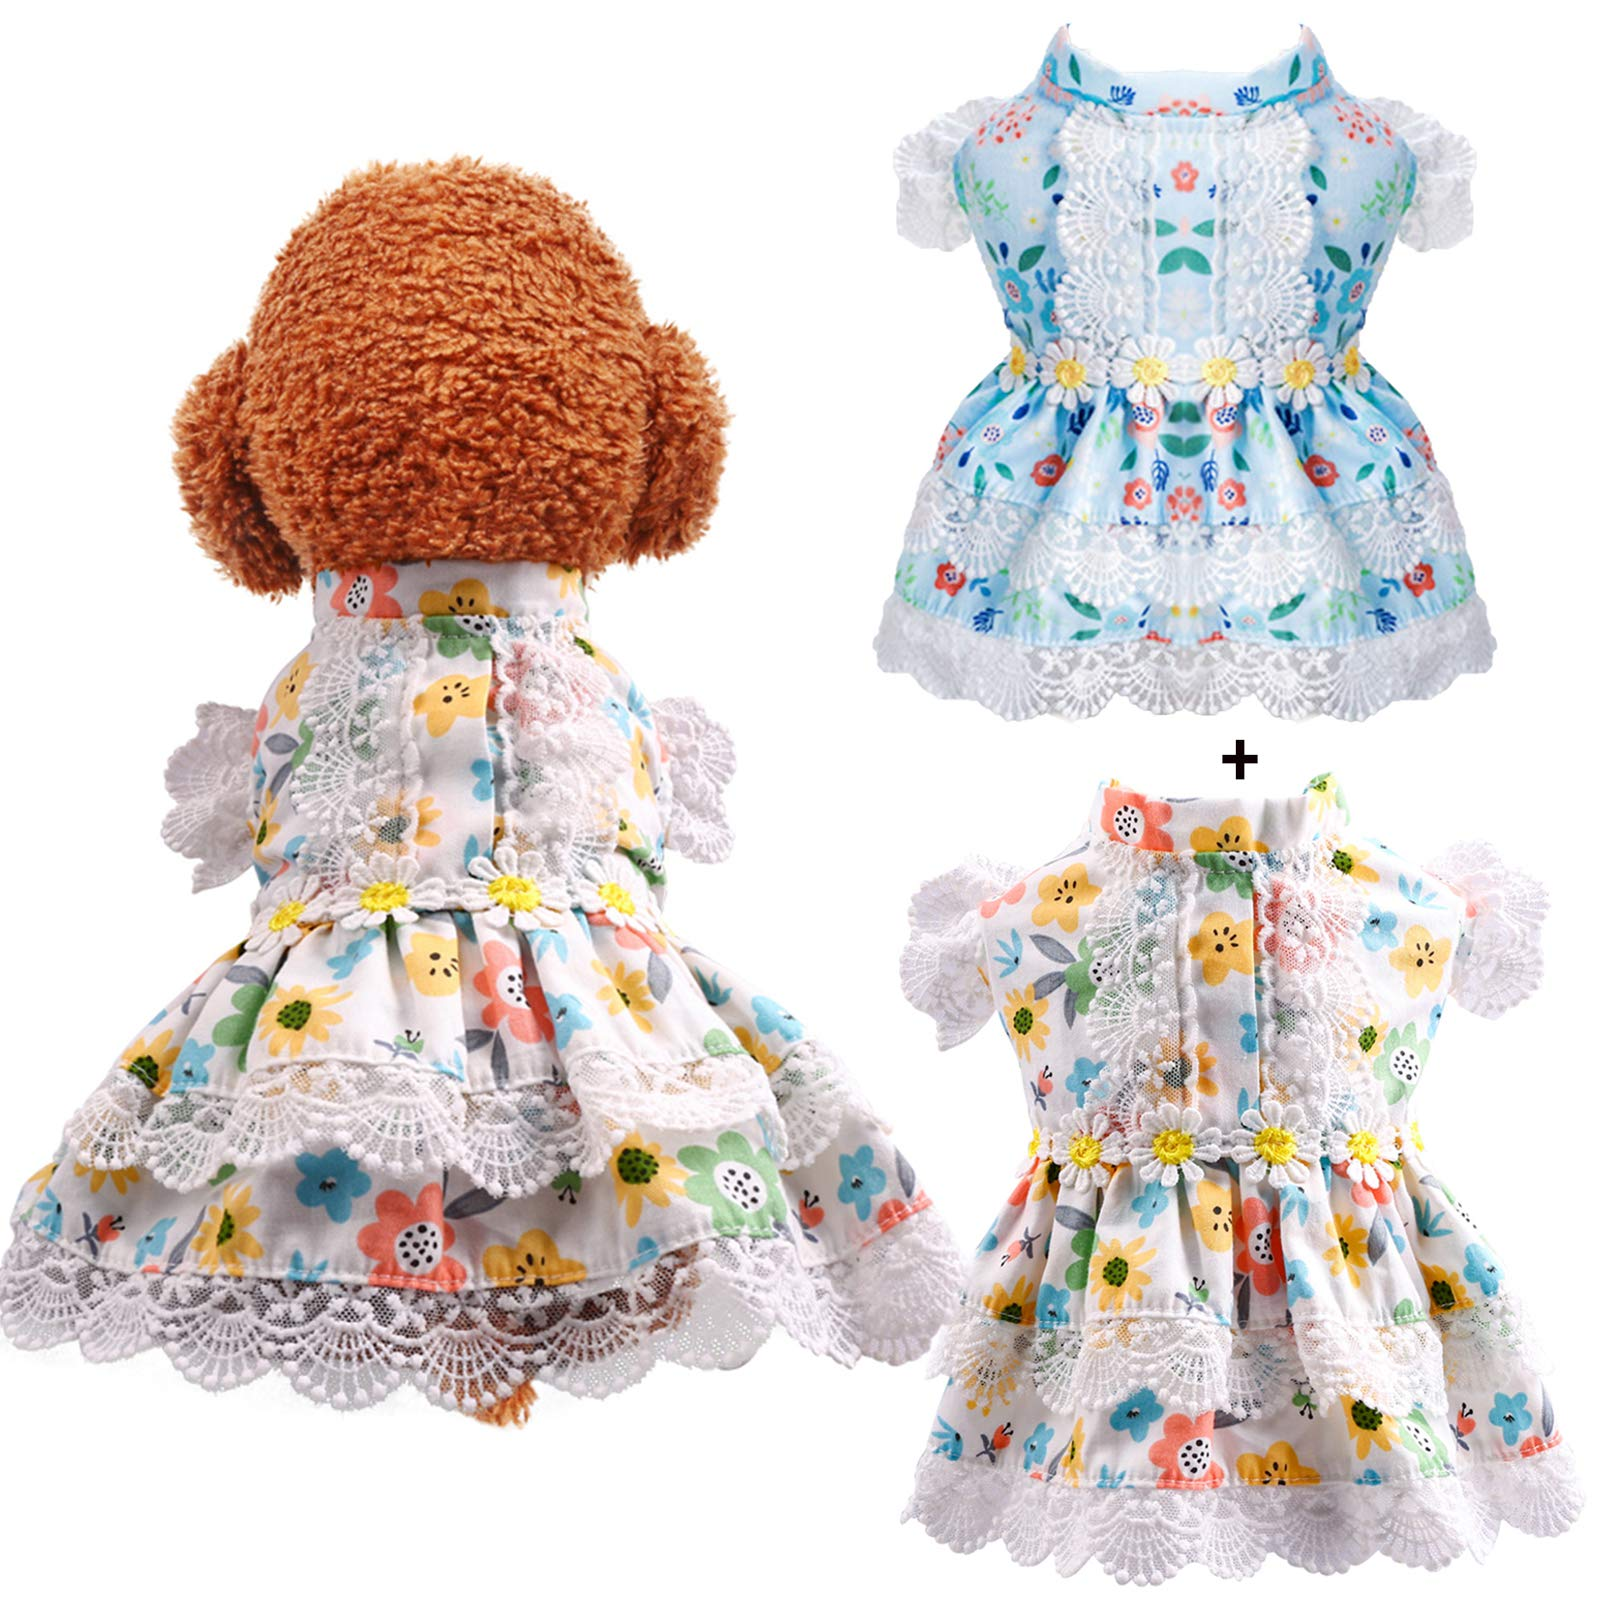 ABRRLO 2 Pack Dog Dress for Small Dogs Girl Summer Pet Clothes Cute Floral Lace Puppy Cat Princess Dress